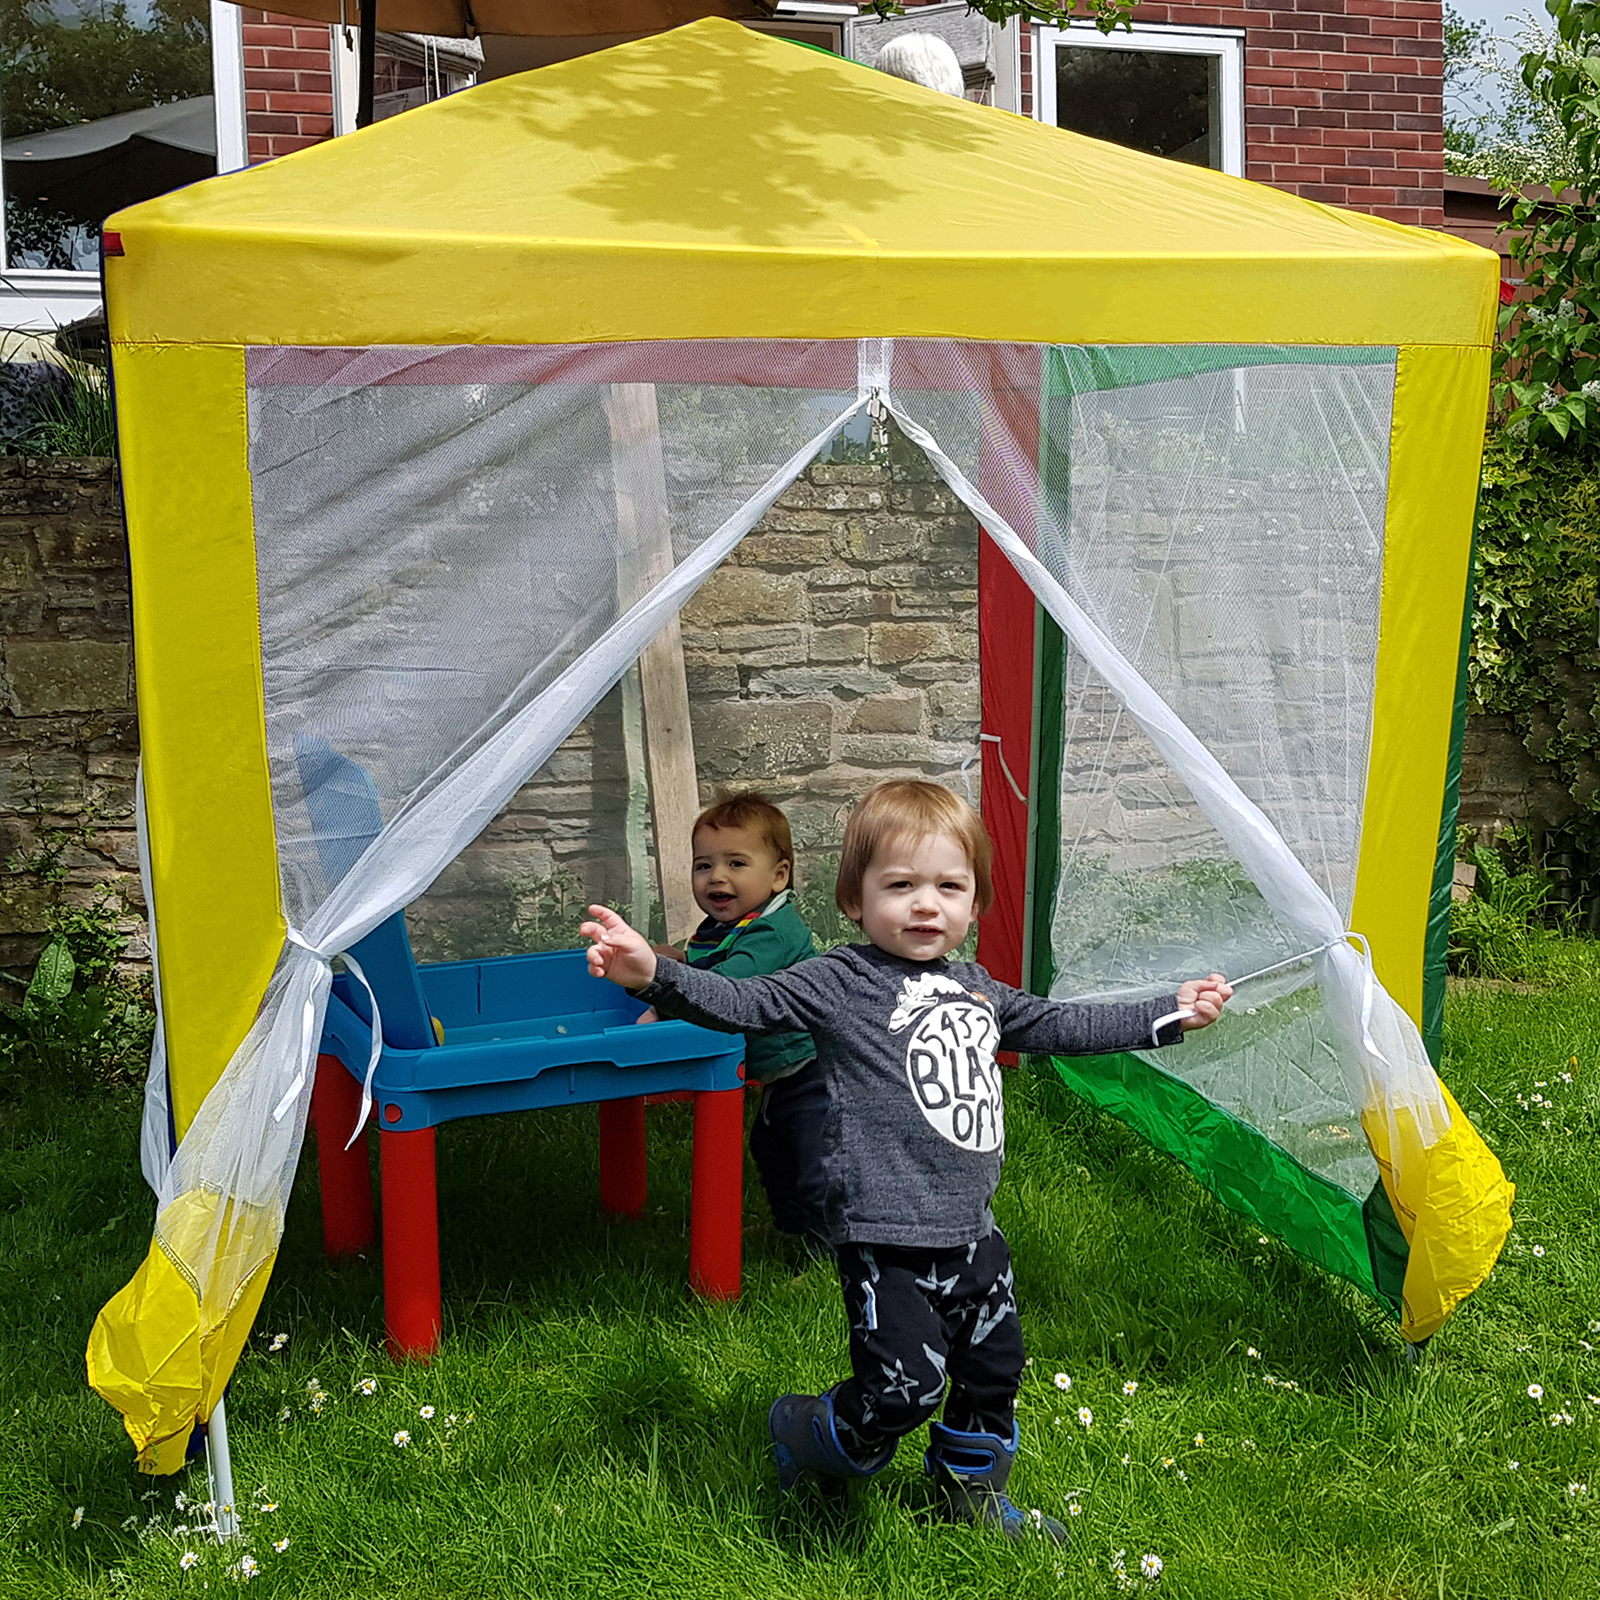 Details about Kids Gazebo Outdoor Garden Multi Colour Childrens Marquee Tent Sun Shade Beach